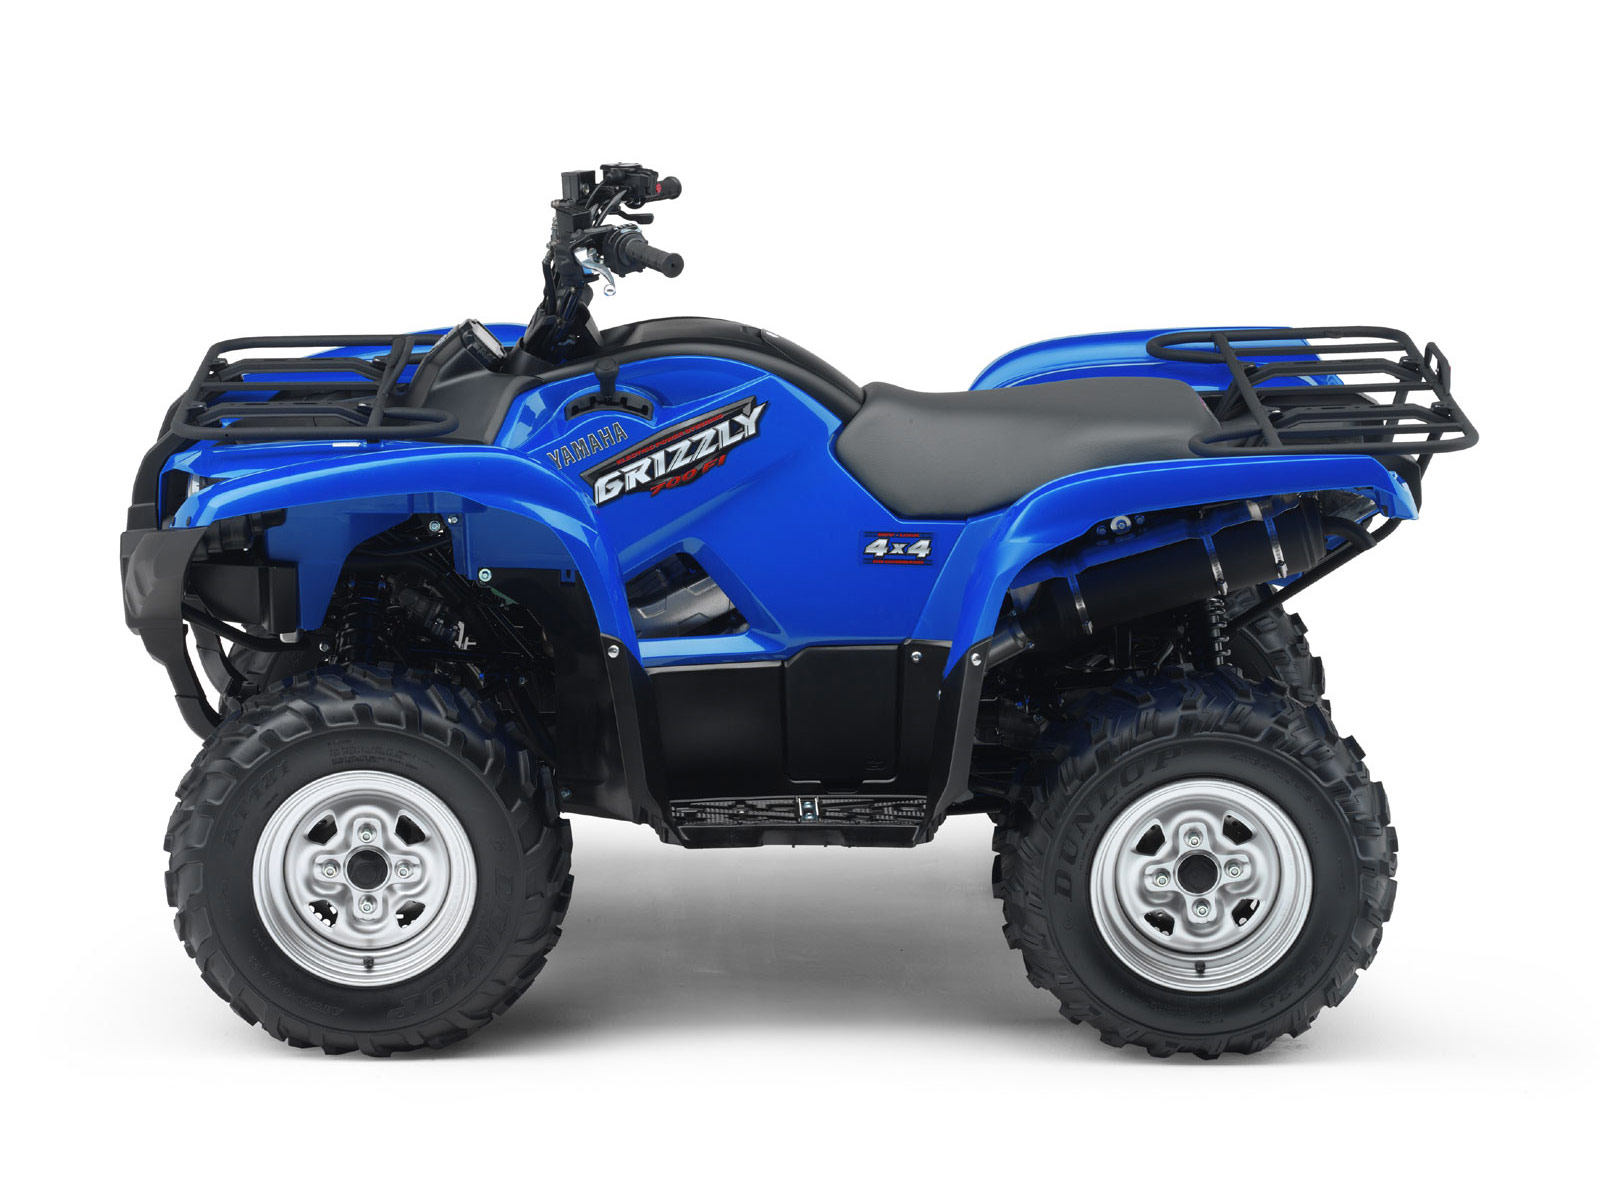 2009 grizzly 700 fi yamaha atv pictures specifications. Black Bedroom Furniture Sets. Home Design Ideas